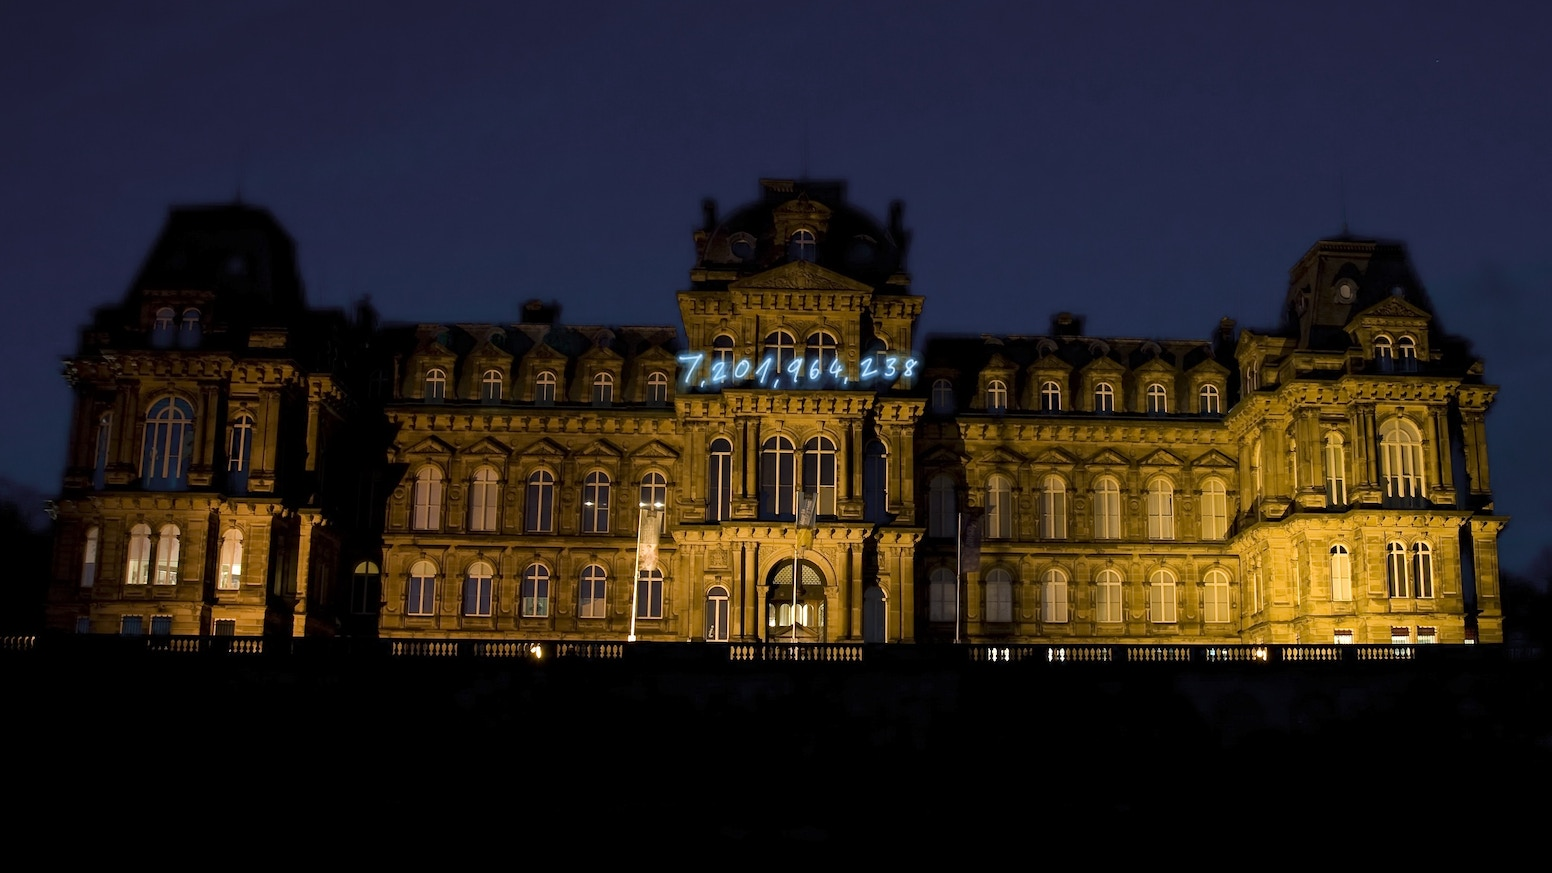 The Bowes Museum Installs Neon Art On Its French Façade